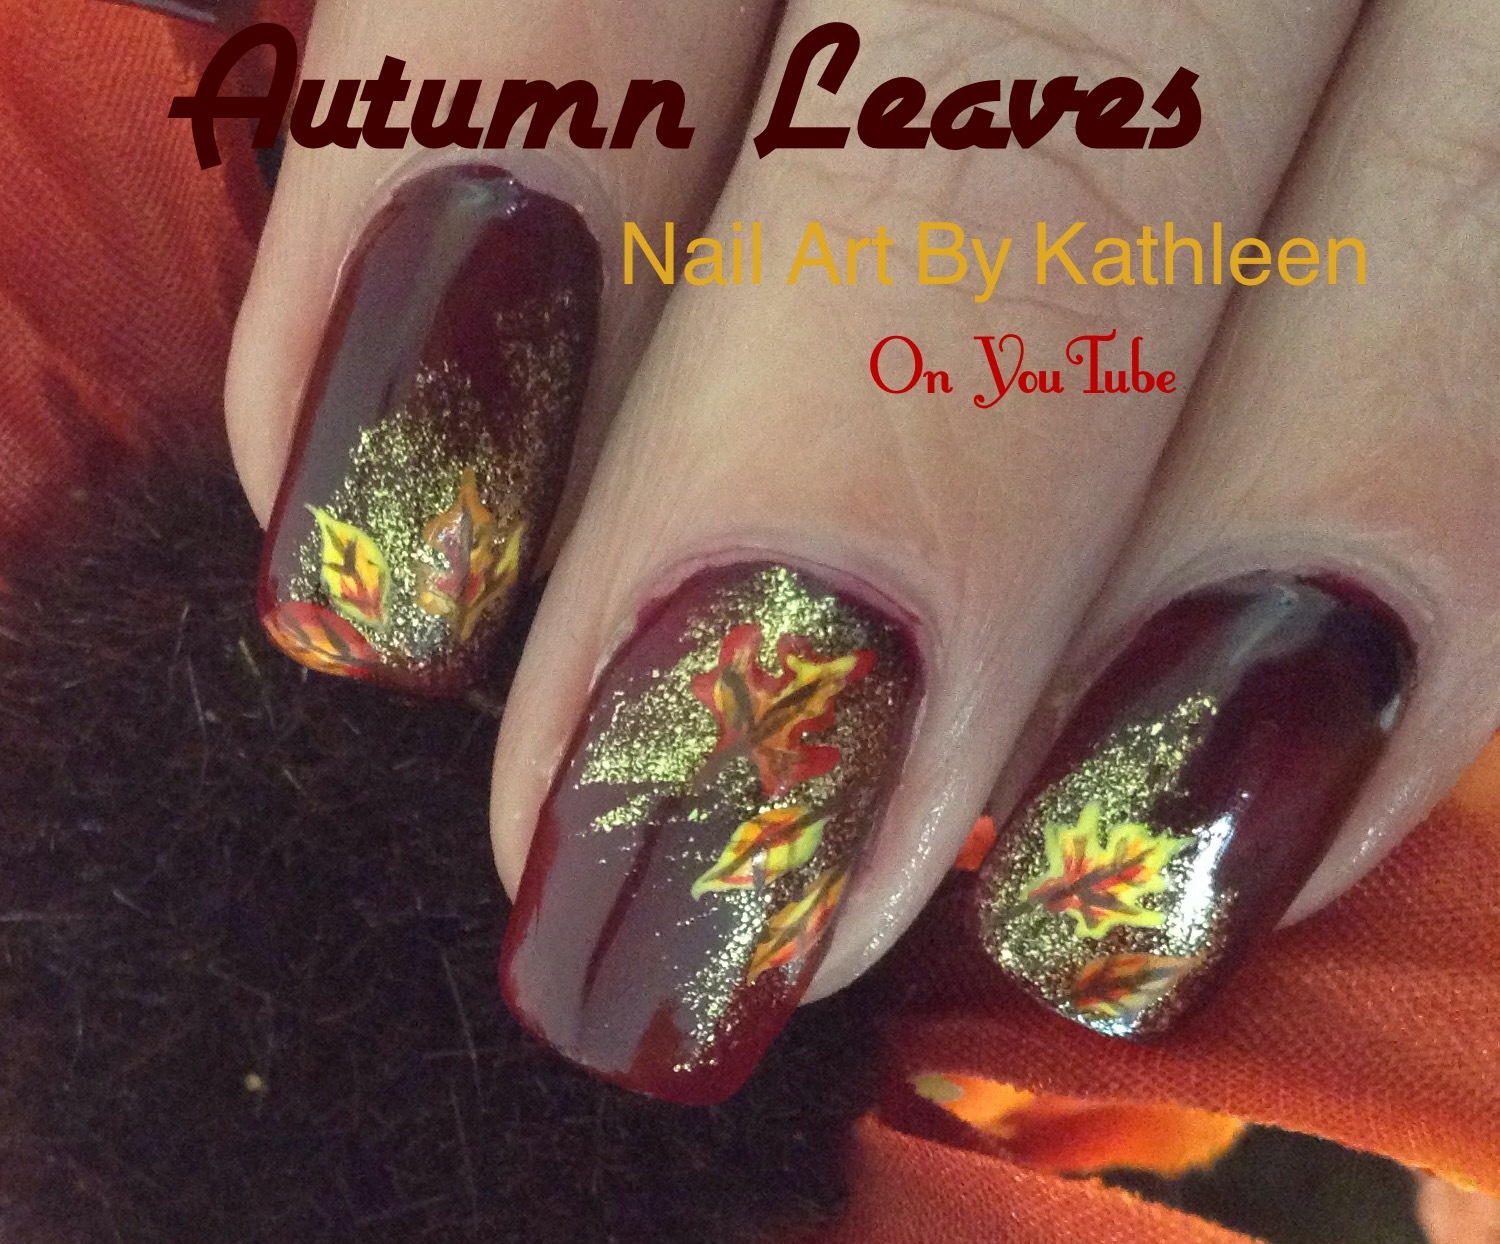 Nail Art By Kathleen: Autumn Leaves Nail Art, #nails #nailart #fall ...